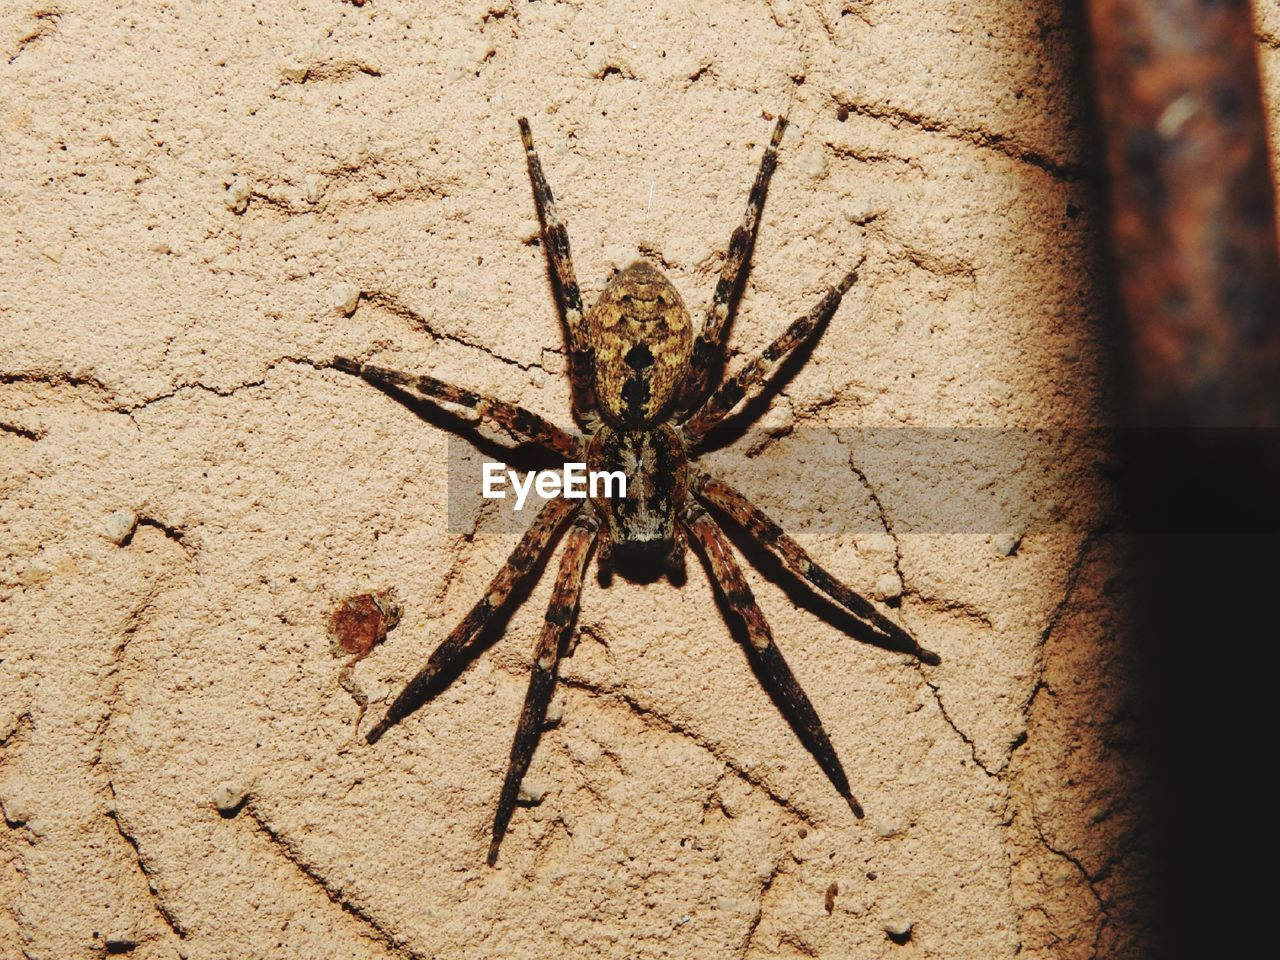 arachnid, invertebrate, animal, animal wildlife, one animal, animal themes, arthropod, insect, animals in the wild, spider, close-up, no people, day, outdoors, nature, animal leg, solid, zoology, wall - building feature, full length, poisonous